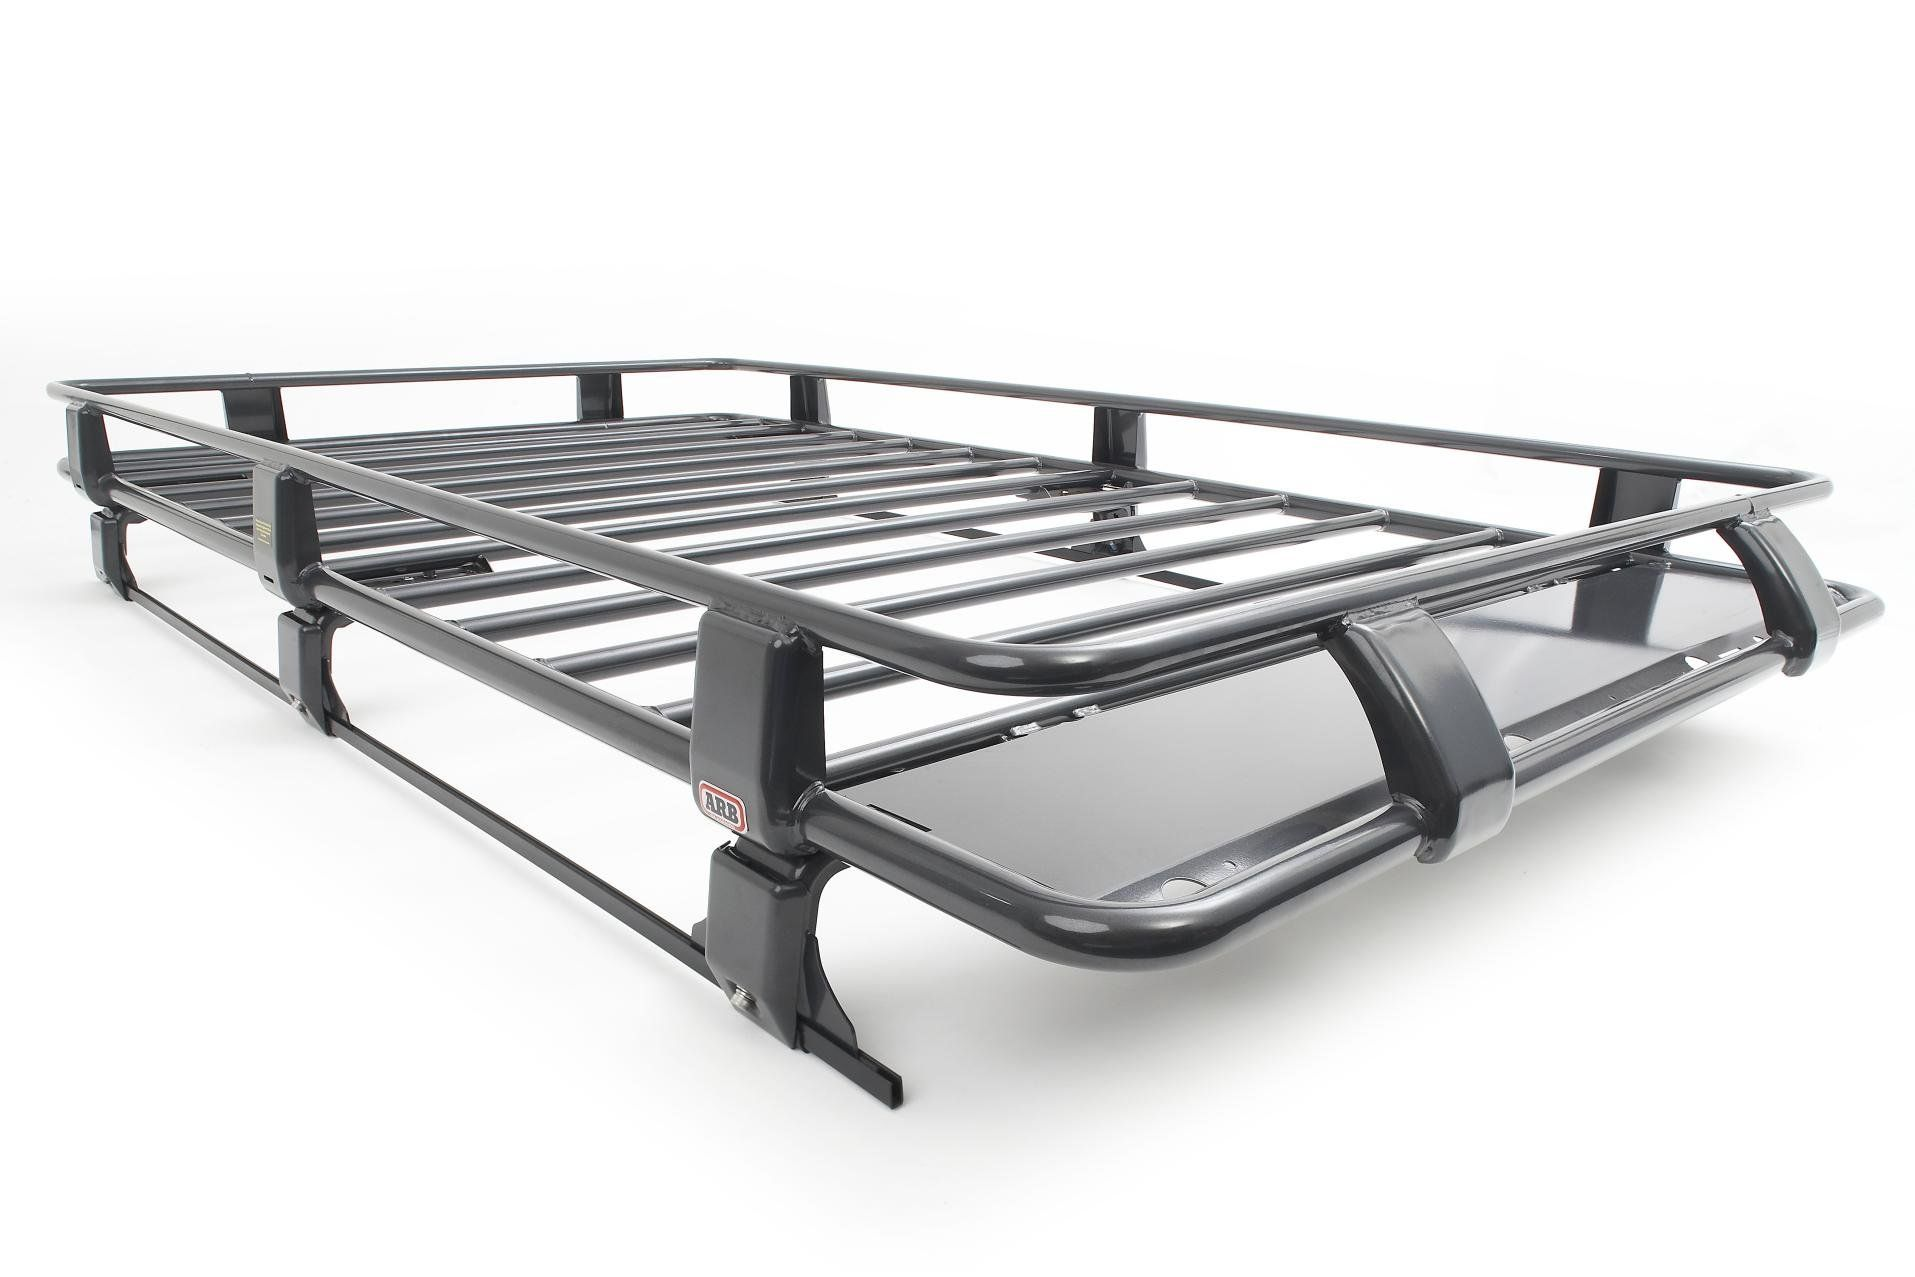 Arb 3800020m 73 X 49 Roof Rack With Mesh Floor For 84 01 Jeep Cherokee Xj Roof Rack Basket Roof Rack Roof Basket